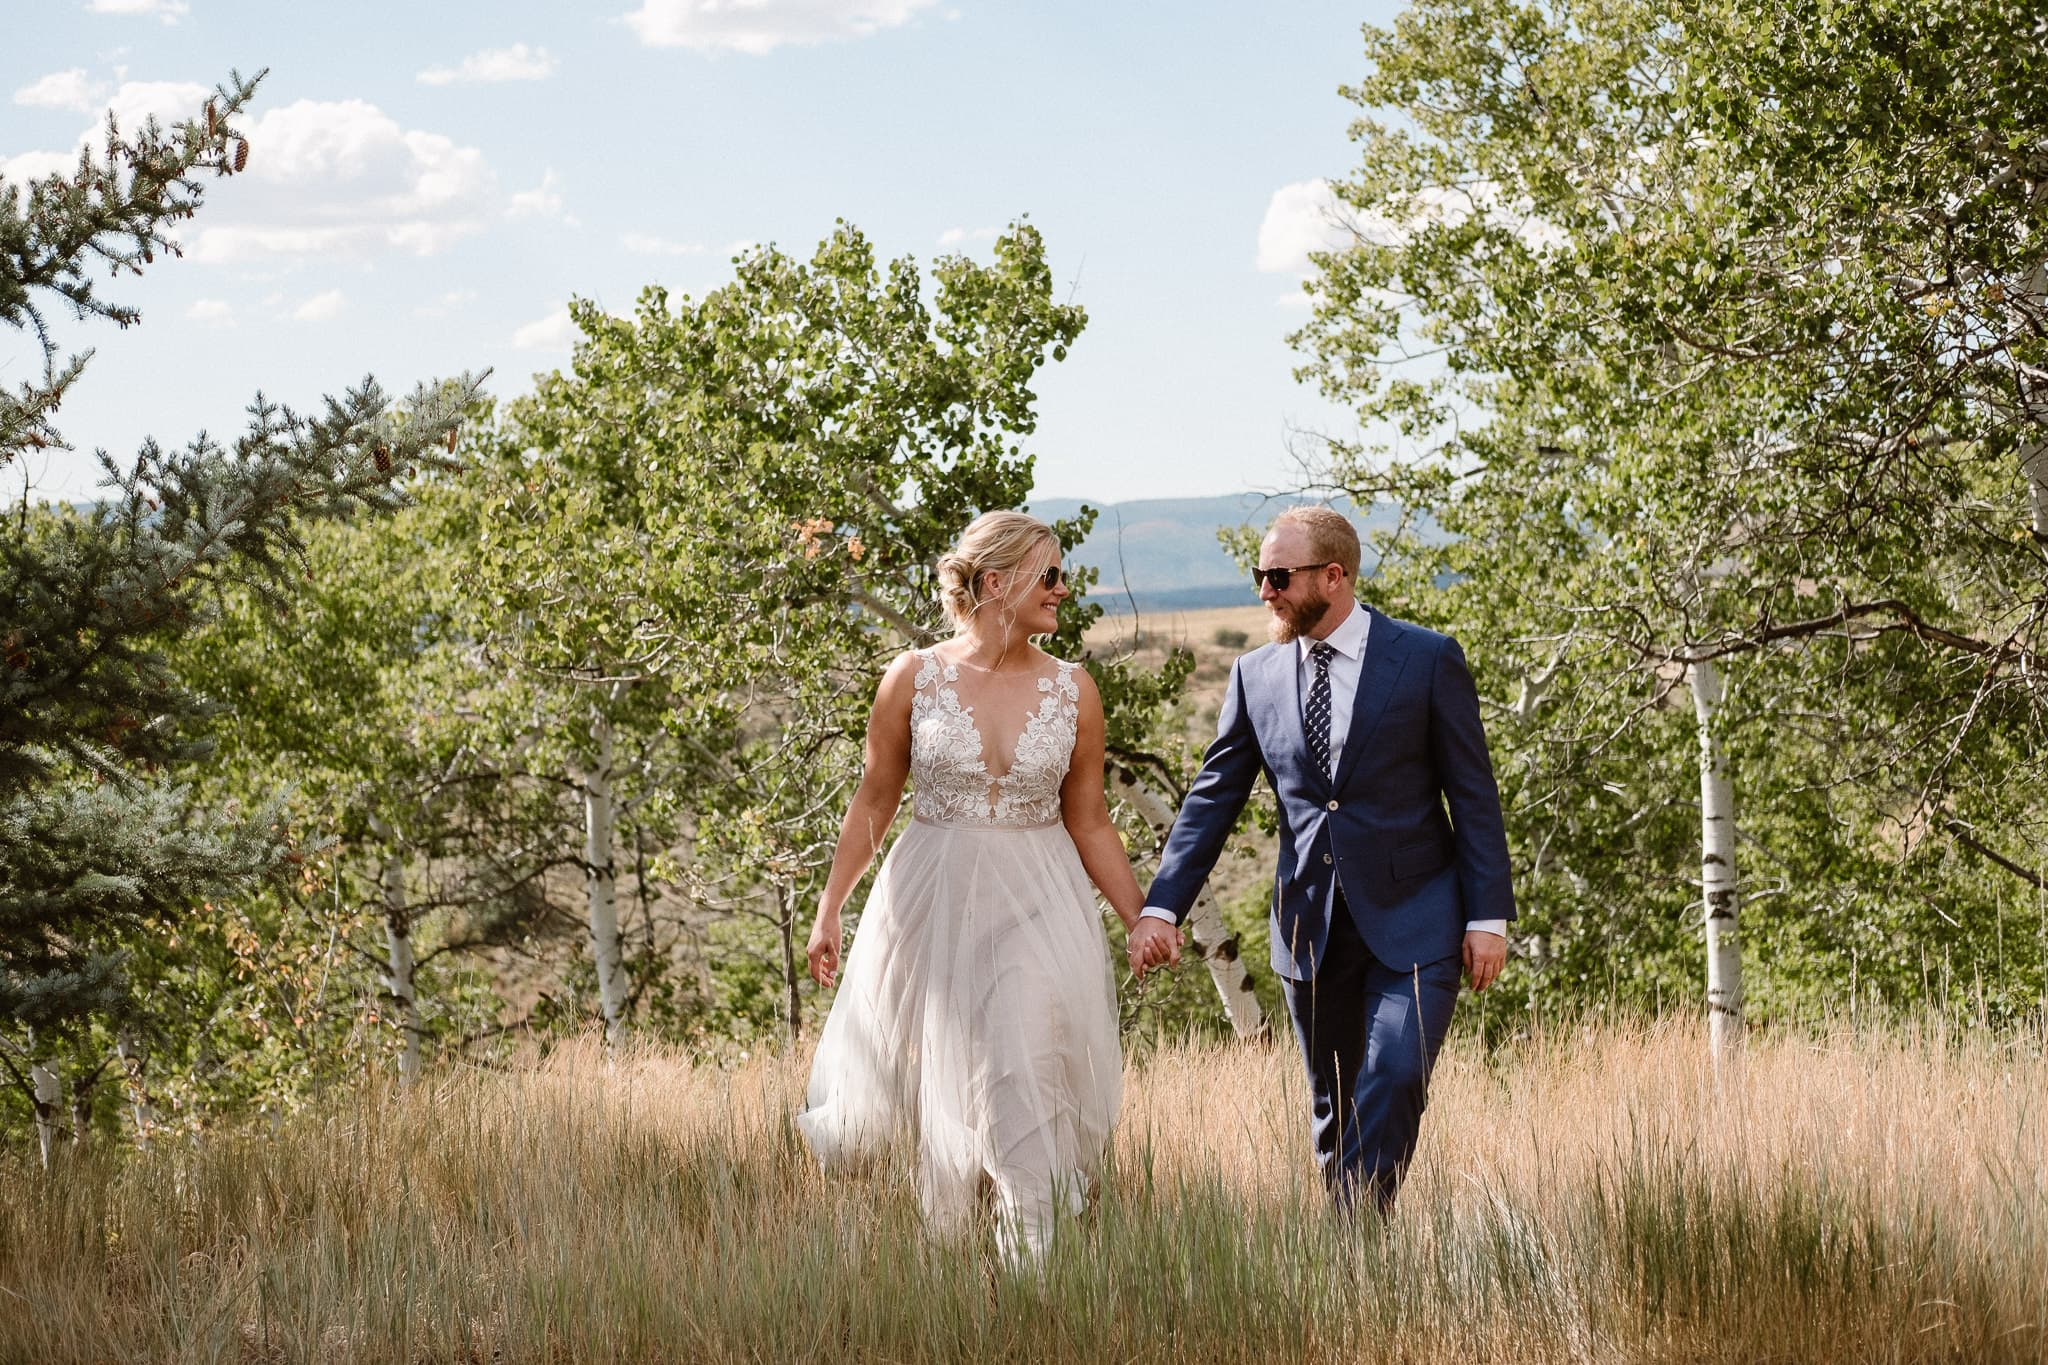 Steamboat Springs wedding photographer, La Joya Dulce wedding, Colorado ranch wedding venues, bride and groom portraits, bride and groom walking in grass